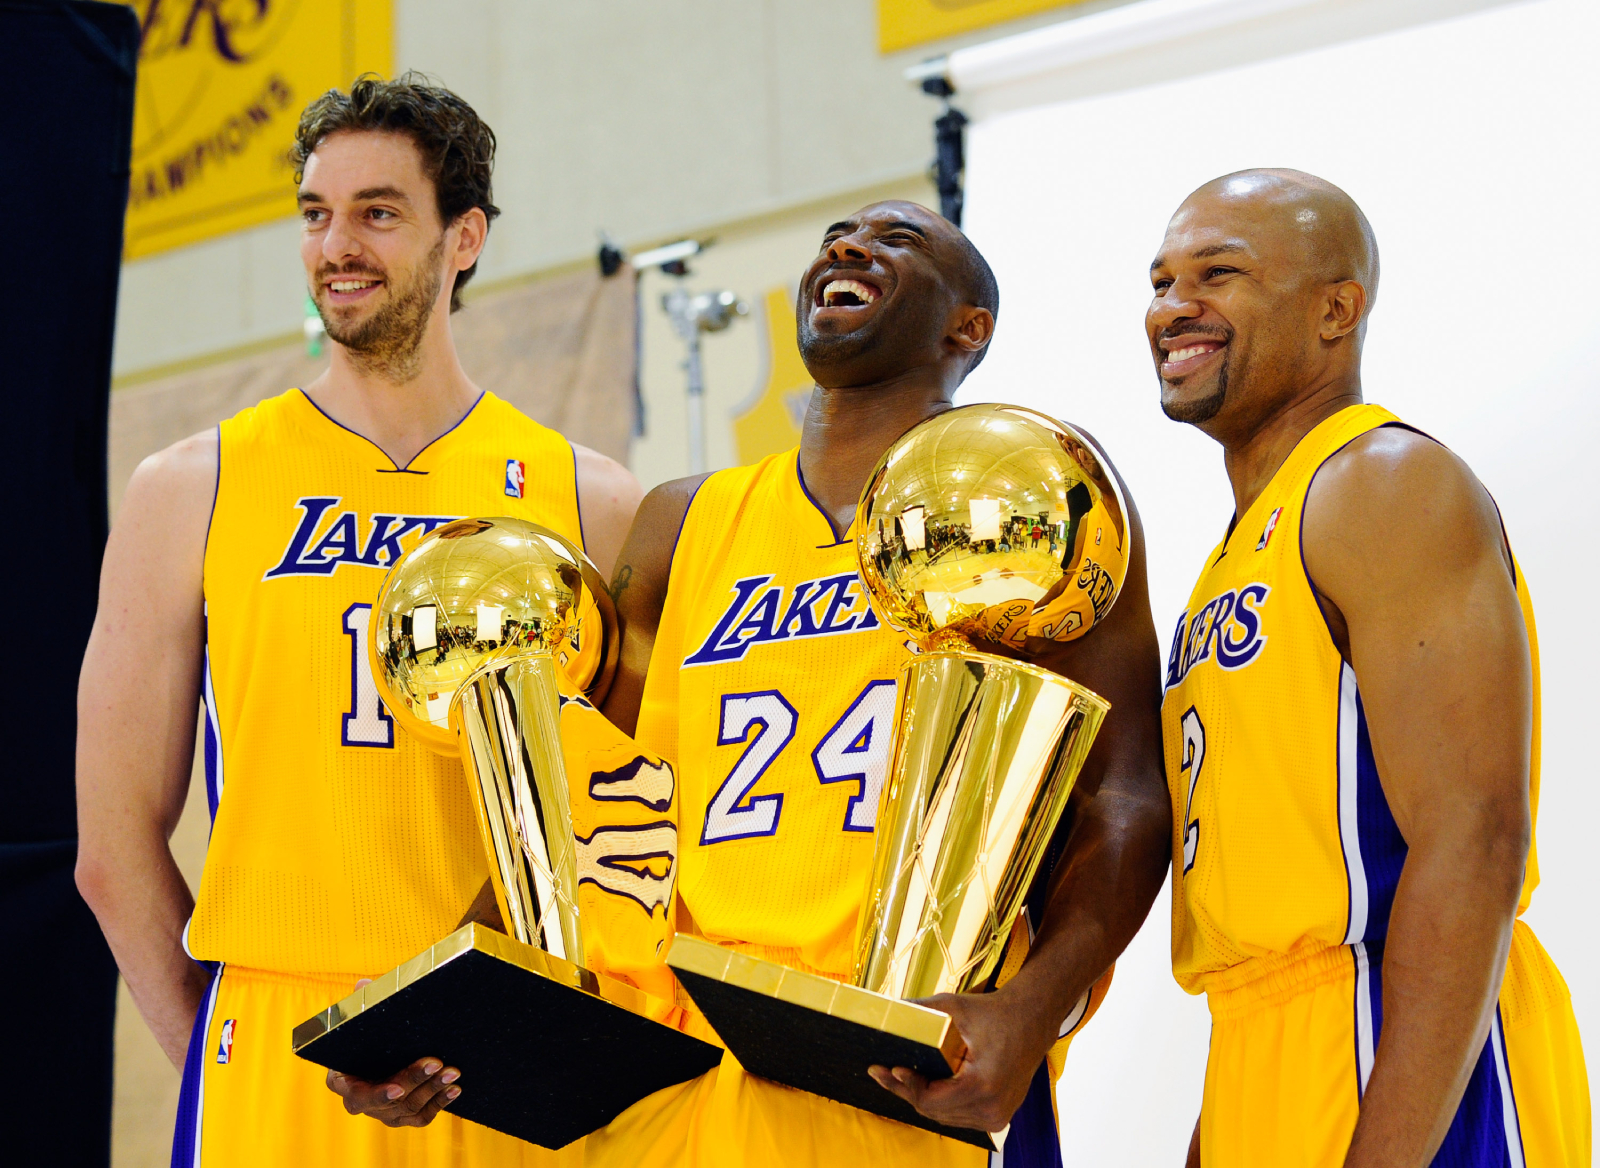 Pau Gasol Has a Massive Net Worth After Winning Championships With Kobe Bryant on the Lakers